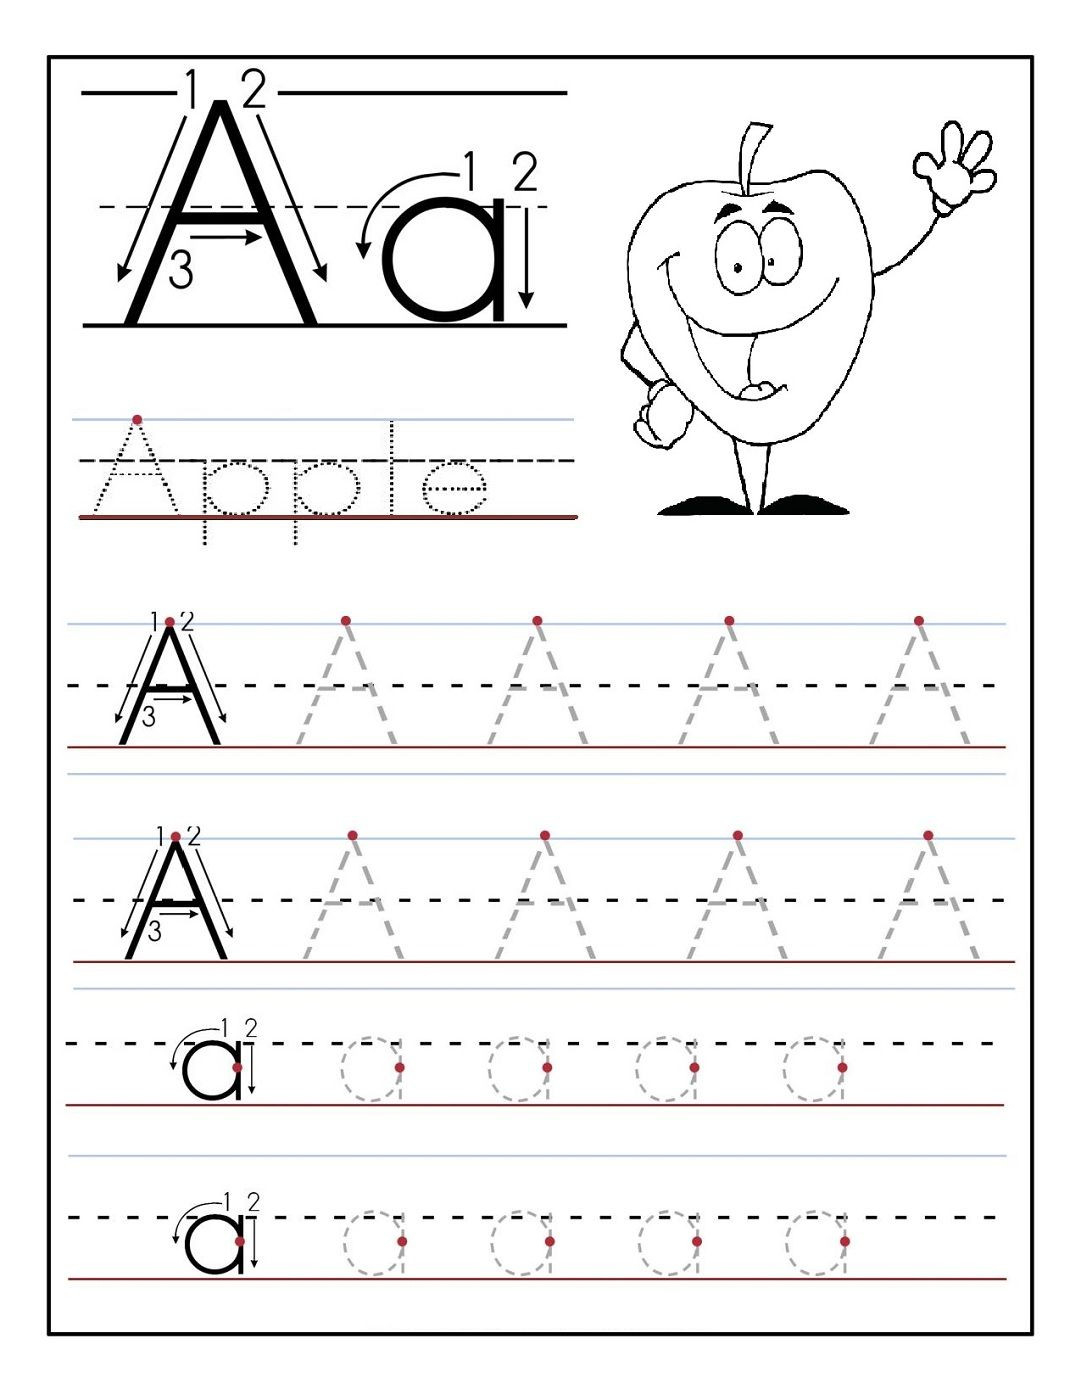 18 Inspirational Free Printable Preschool Worksheets Tracing Letters - Free Printable Preschool Worksheets Tracing Letters